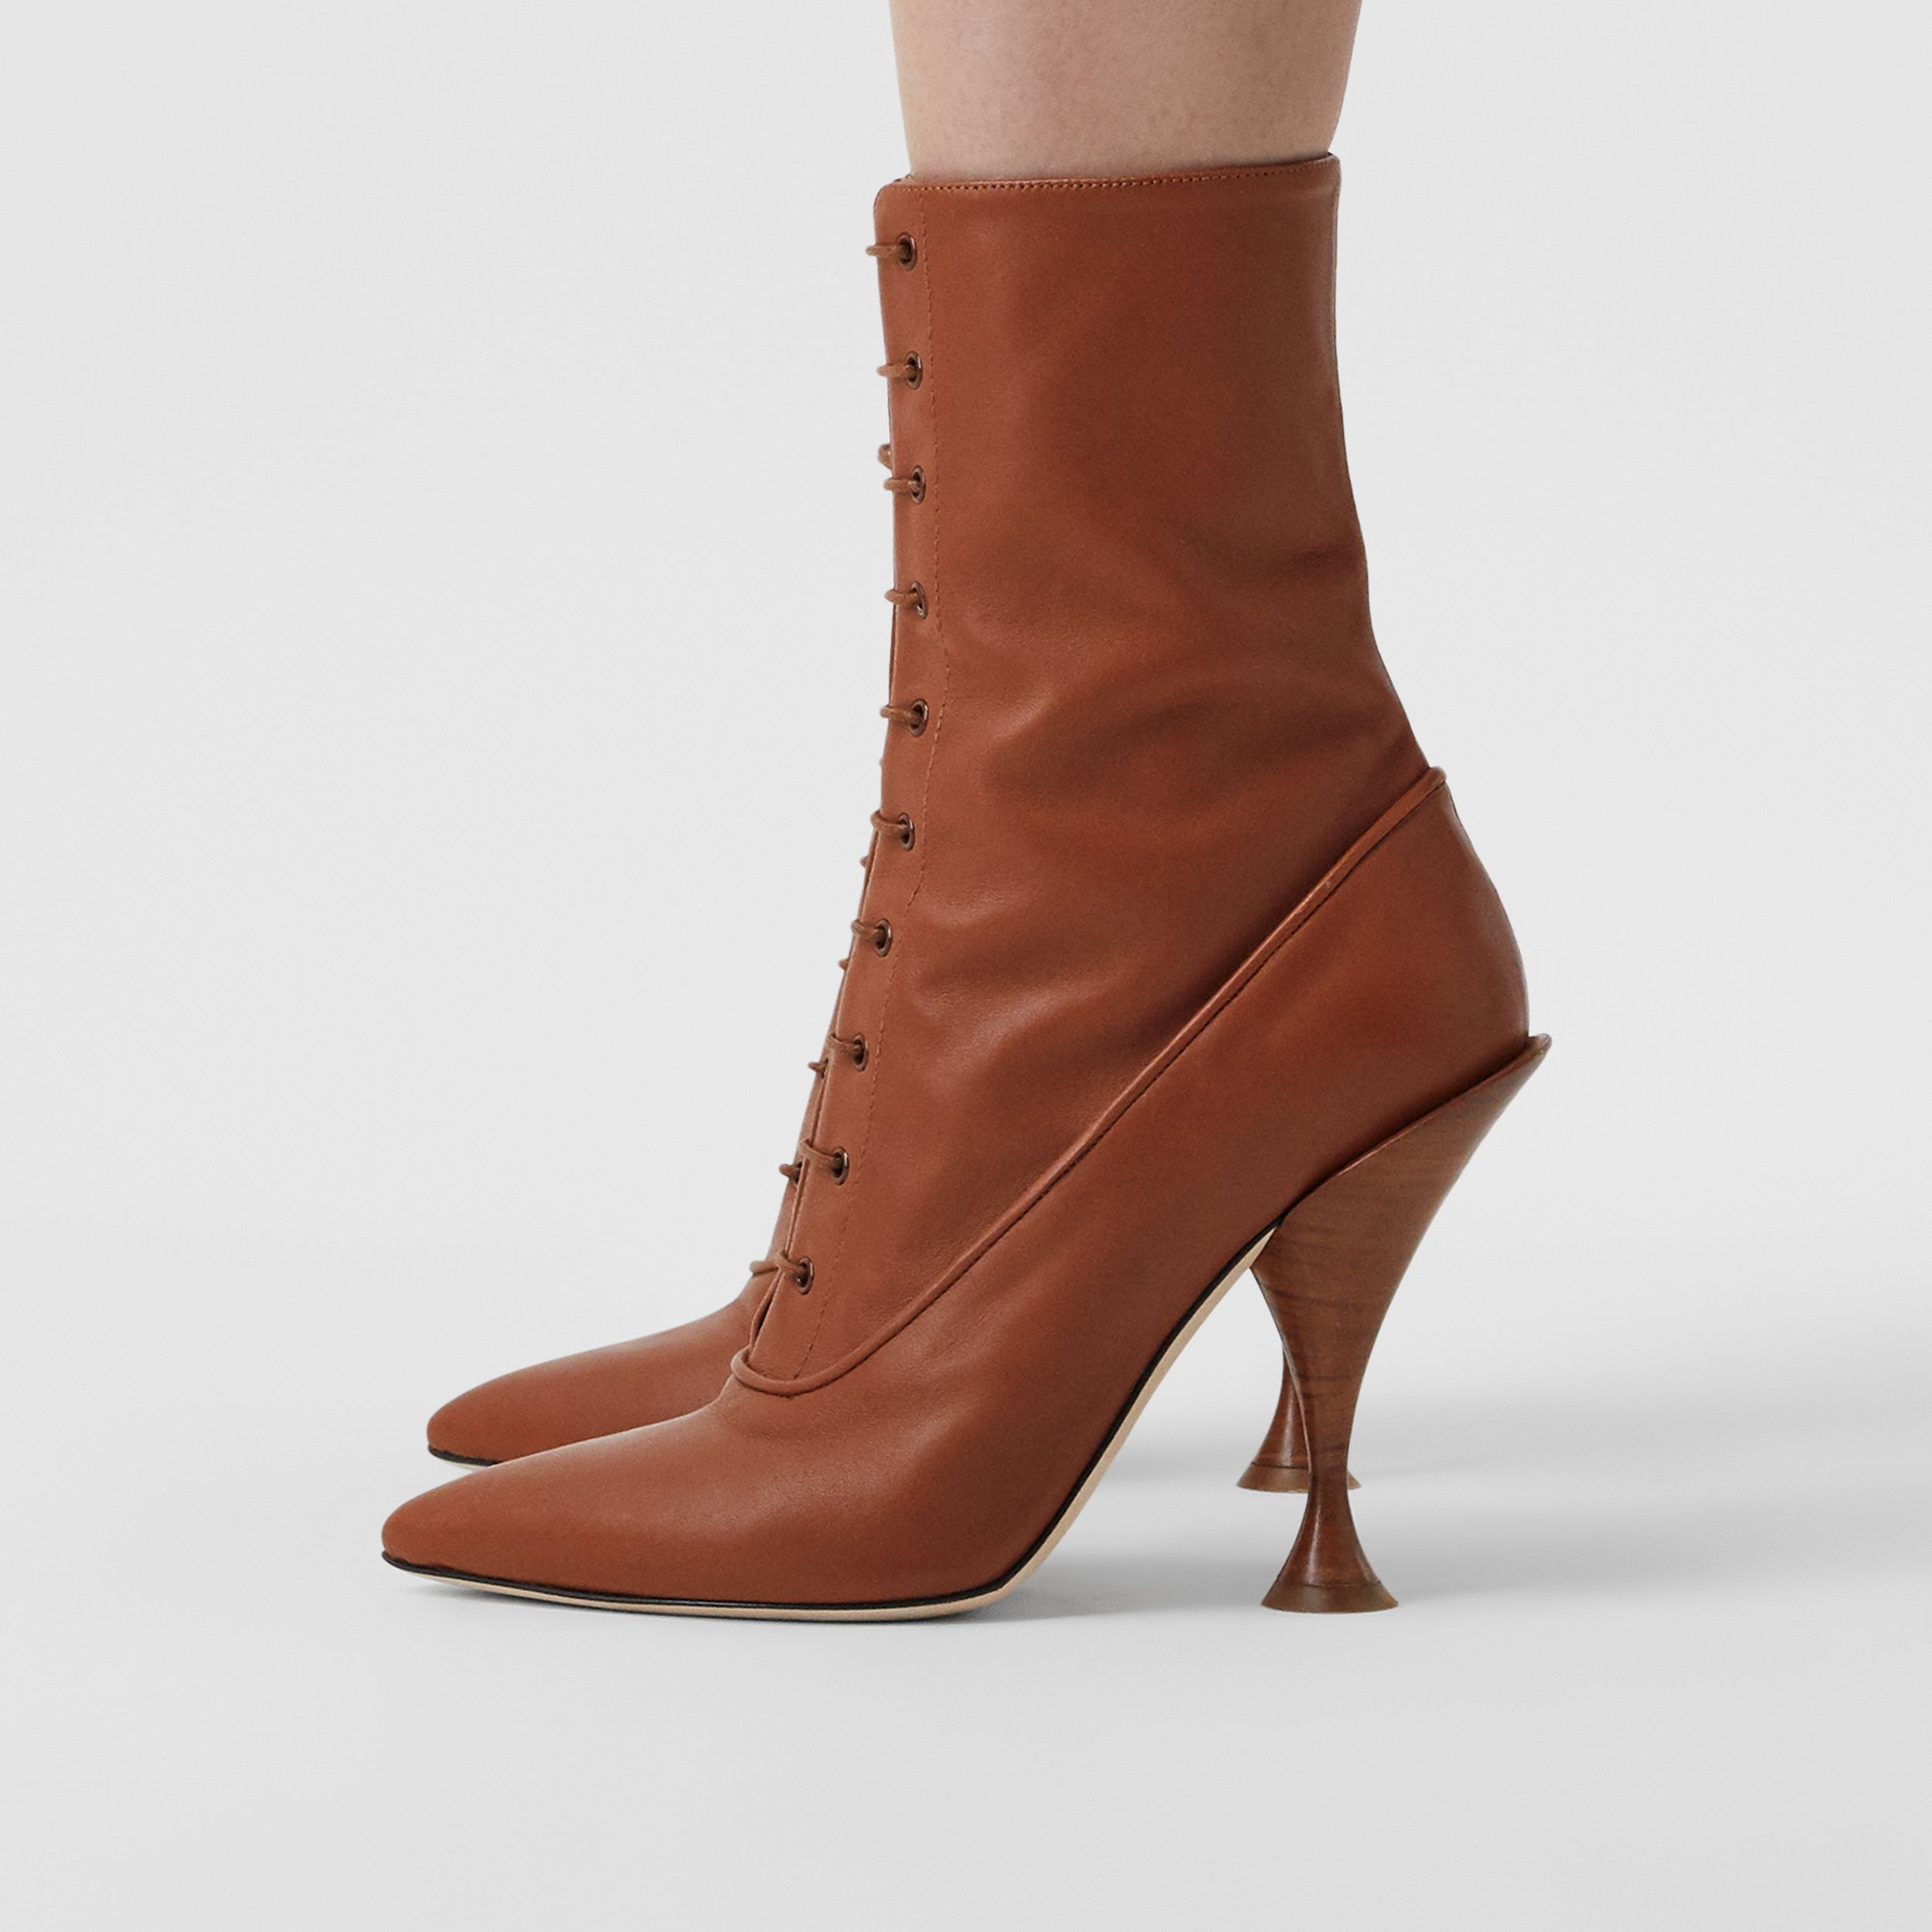 Lambskin Lace-up Ankle Boots in Tan - Women | Burberry Canada - 3